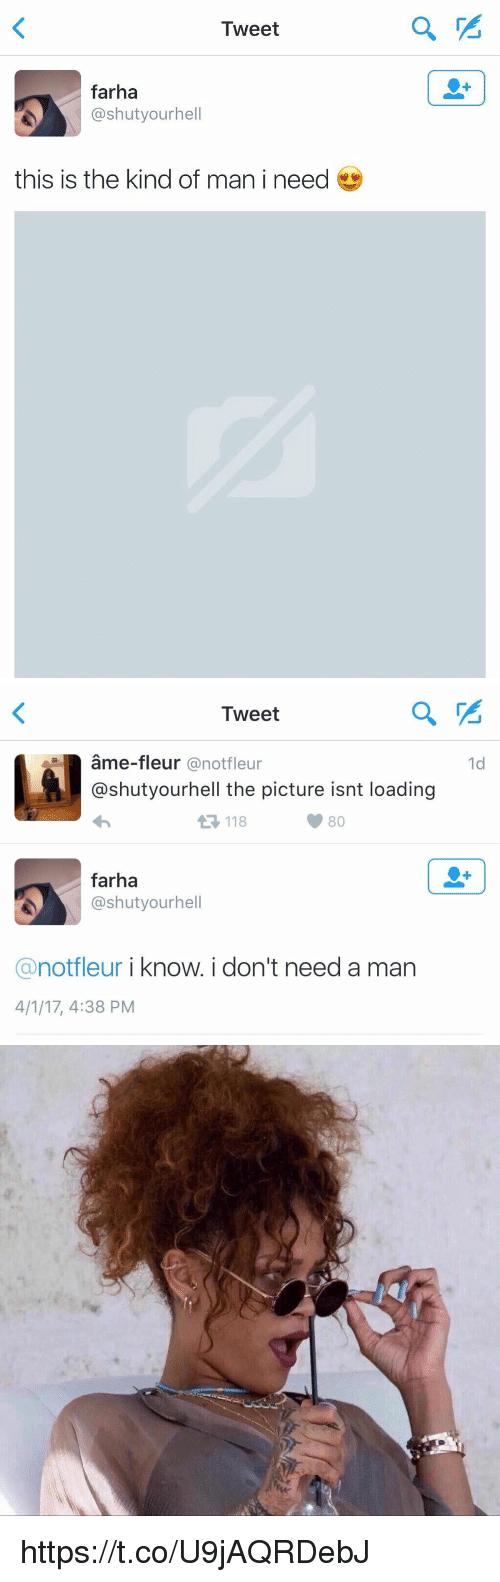 ˜»: Tweet  2  farha  @shutyourhell  this is the kind of man i need   Tweet  ame-fleur @notfleur  @shutyourhell the picture isnt loading  1d  118  farha  @shutyourhell  @notfleur i know. i don't need a mar  4/1/17, 4:38 PM https://t.co/U9jAQRDebJ